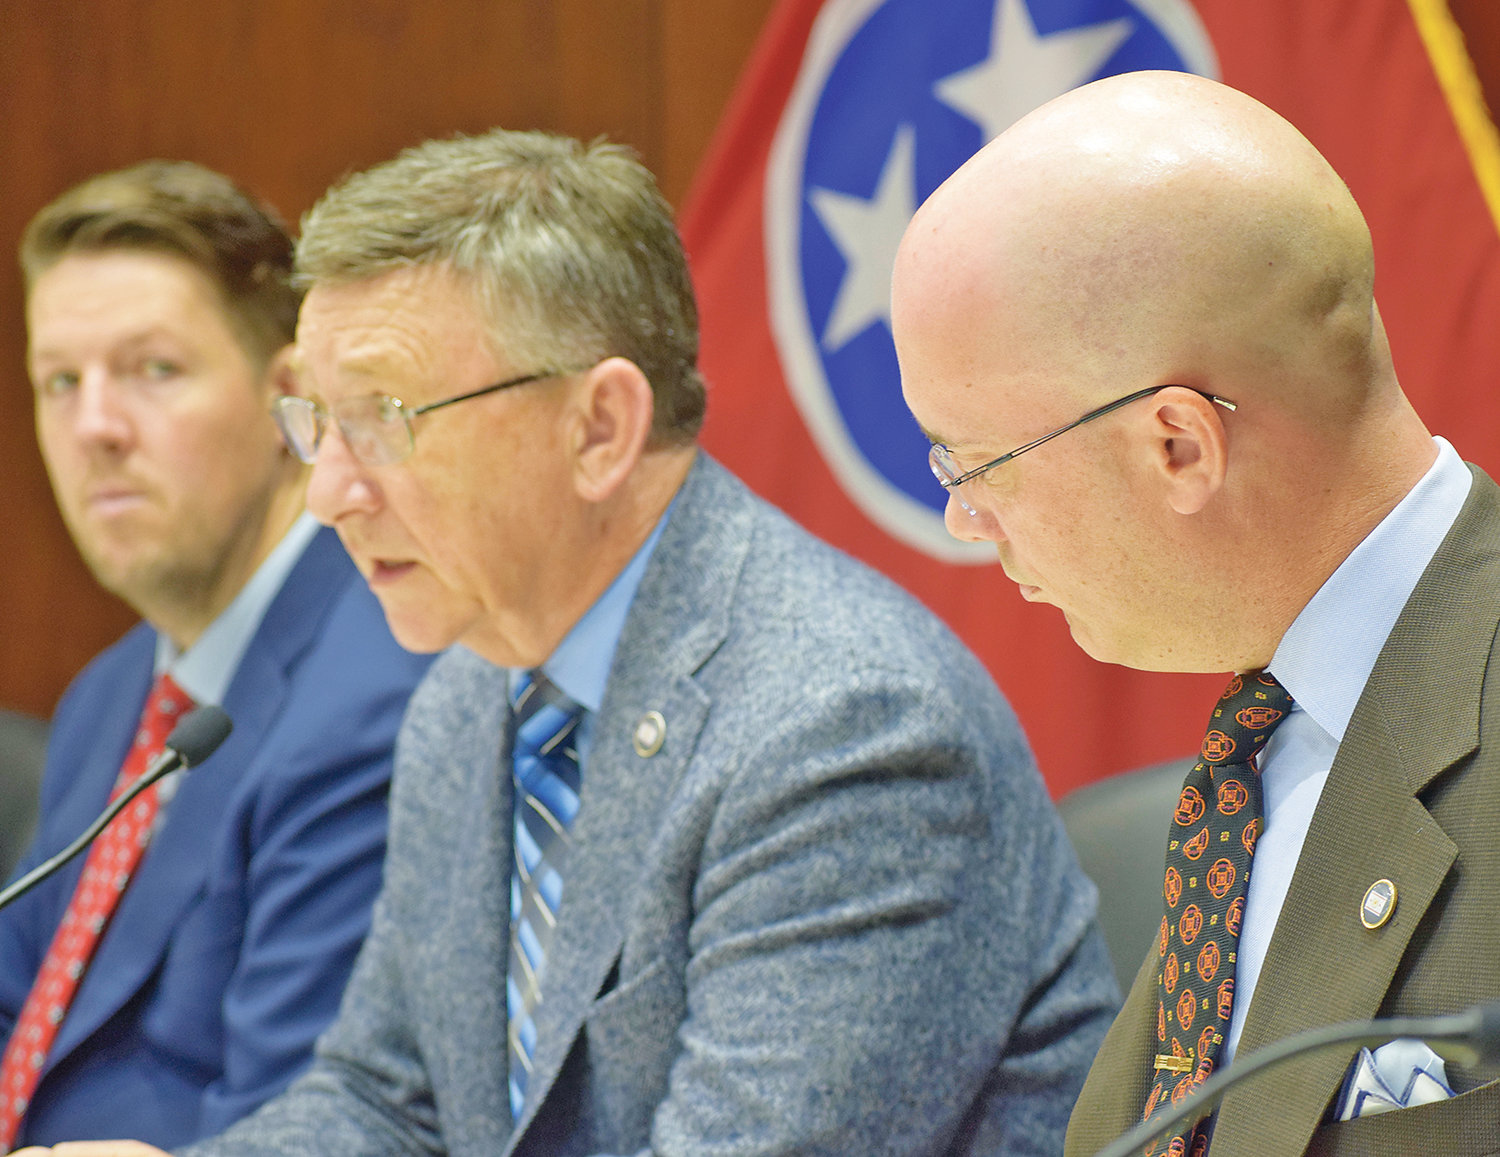 TENNESSEE STATE Rep. Dan Howell (R-Cleveland) presides over the House Transportation Committee hearing that convened in the Legislature's opening week regarding the possibility of bringing Amtrak service to Tennessee.